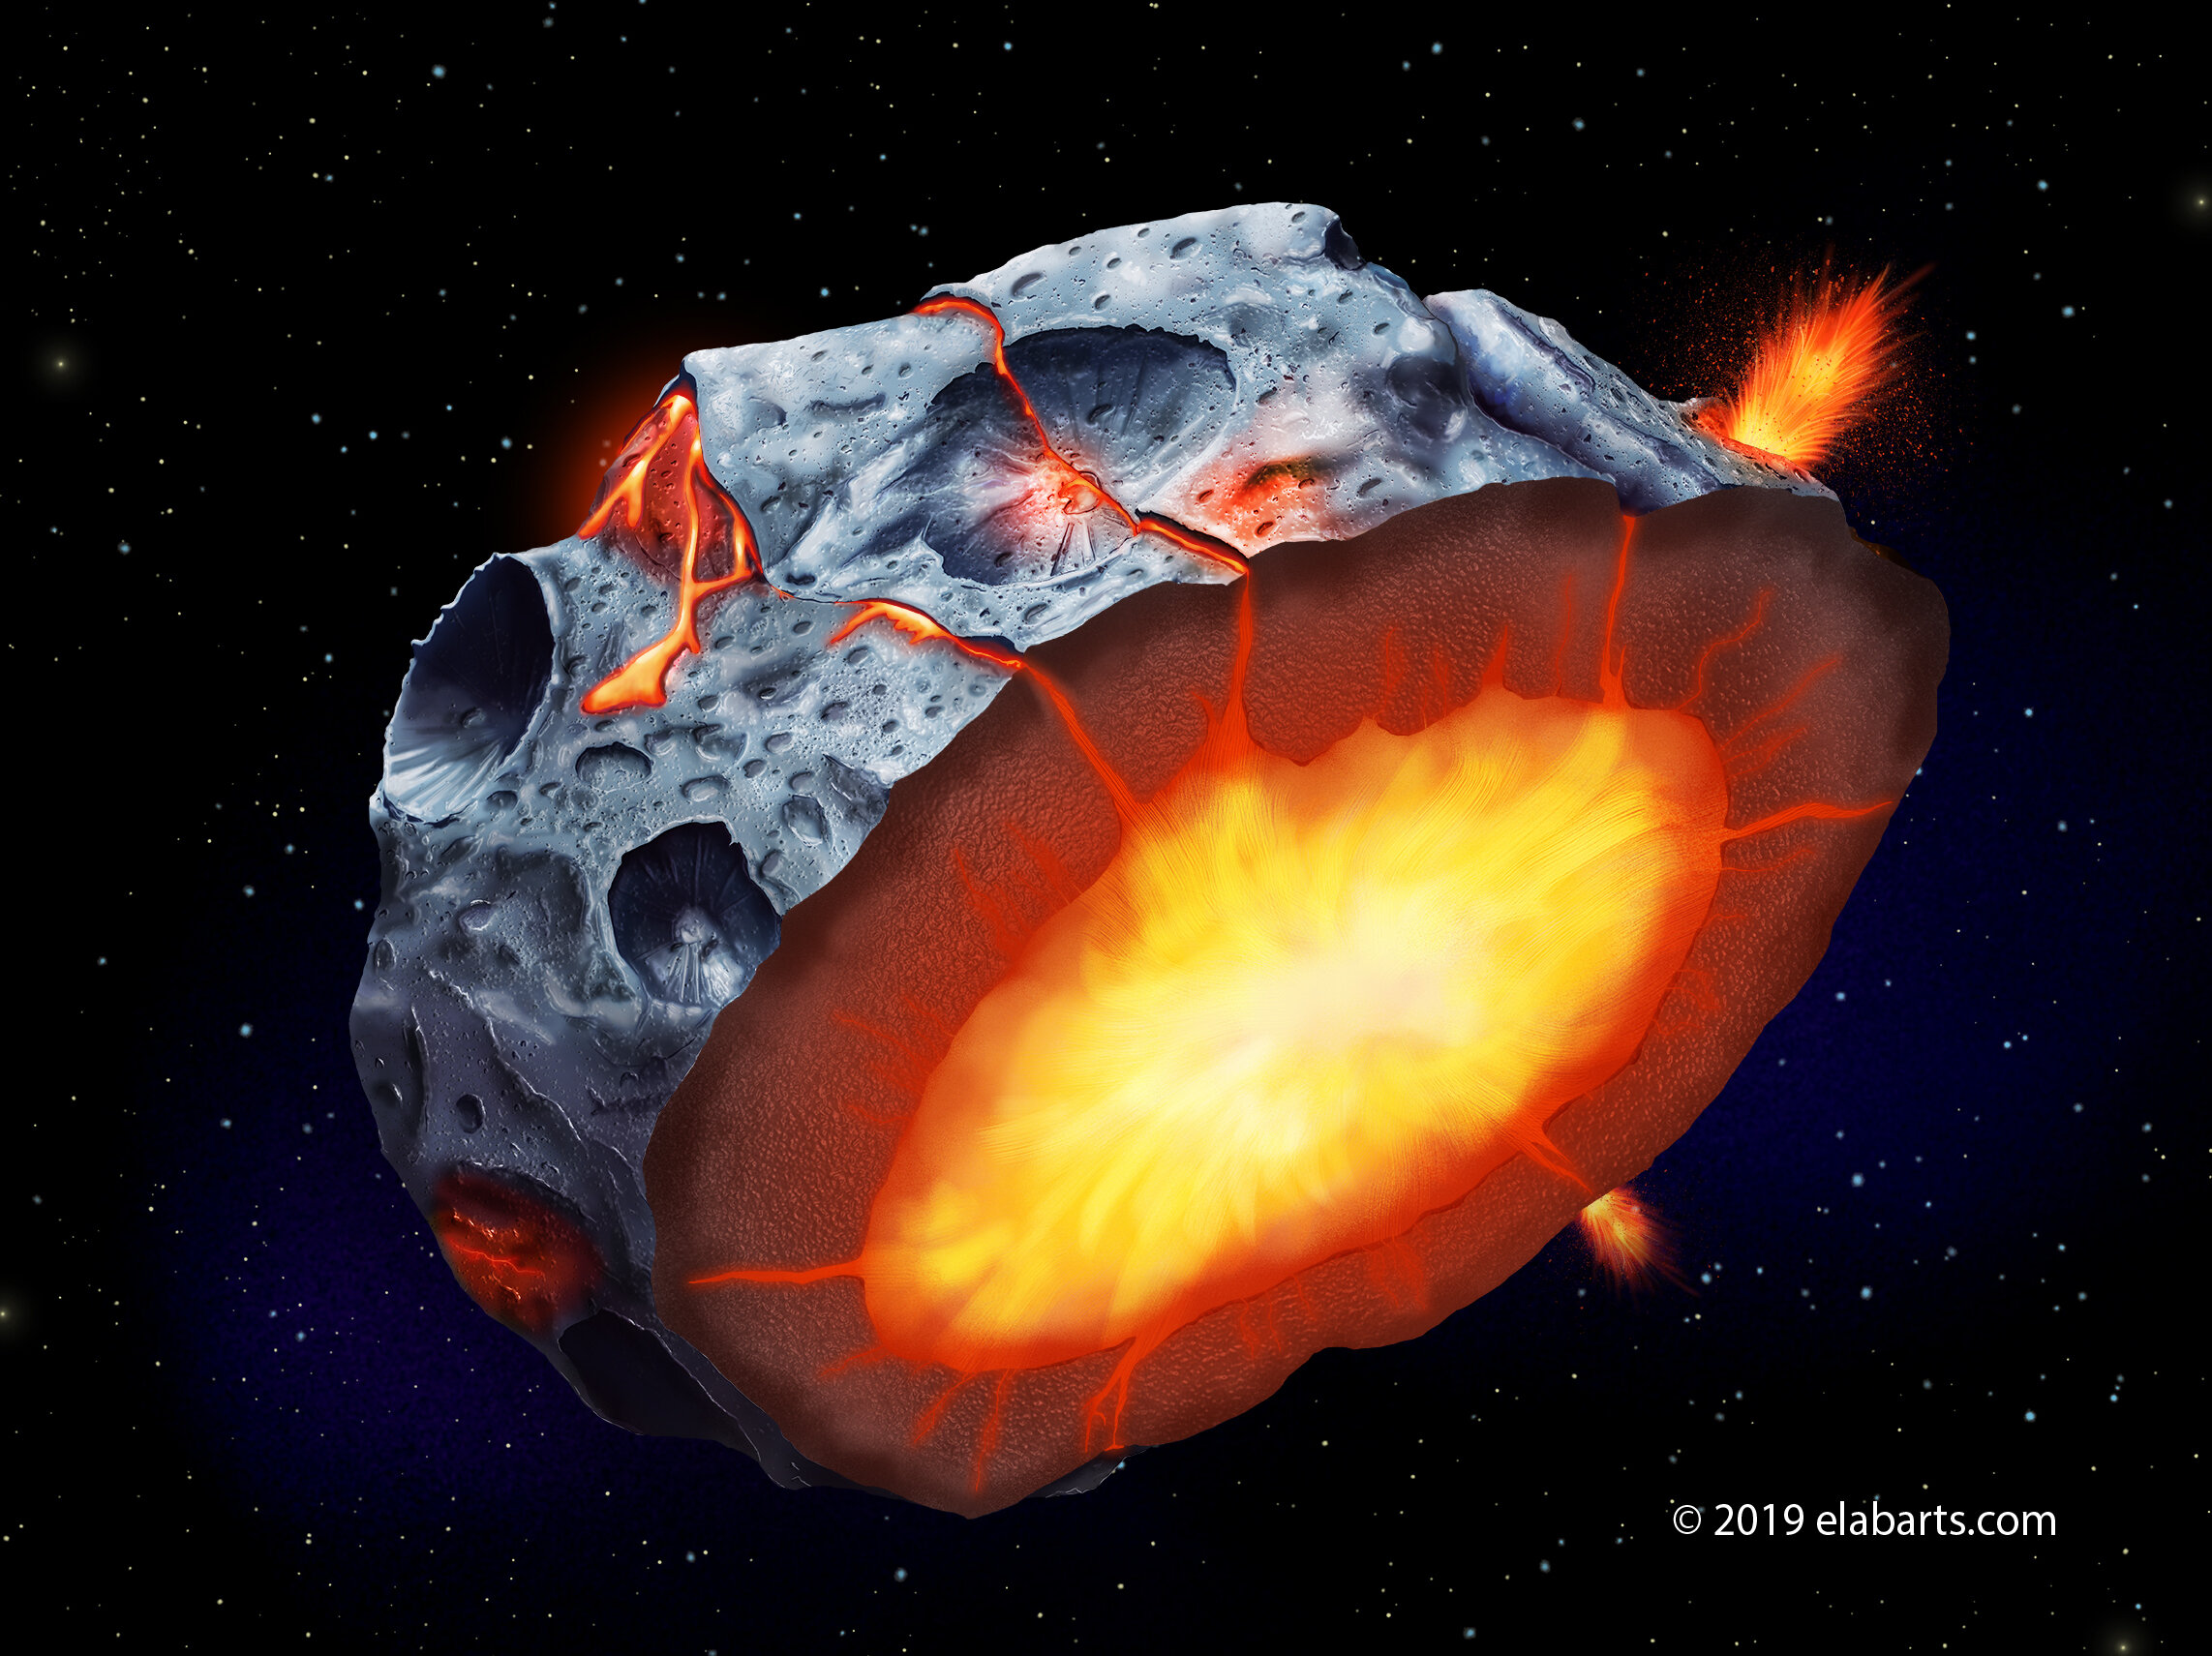 Santa Fe News >> Iron volcanoes may have erupted on metal asteroids